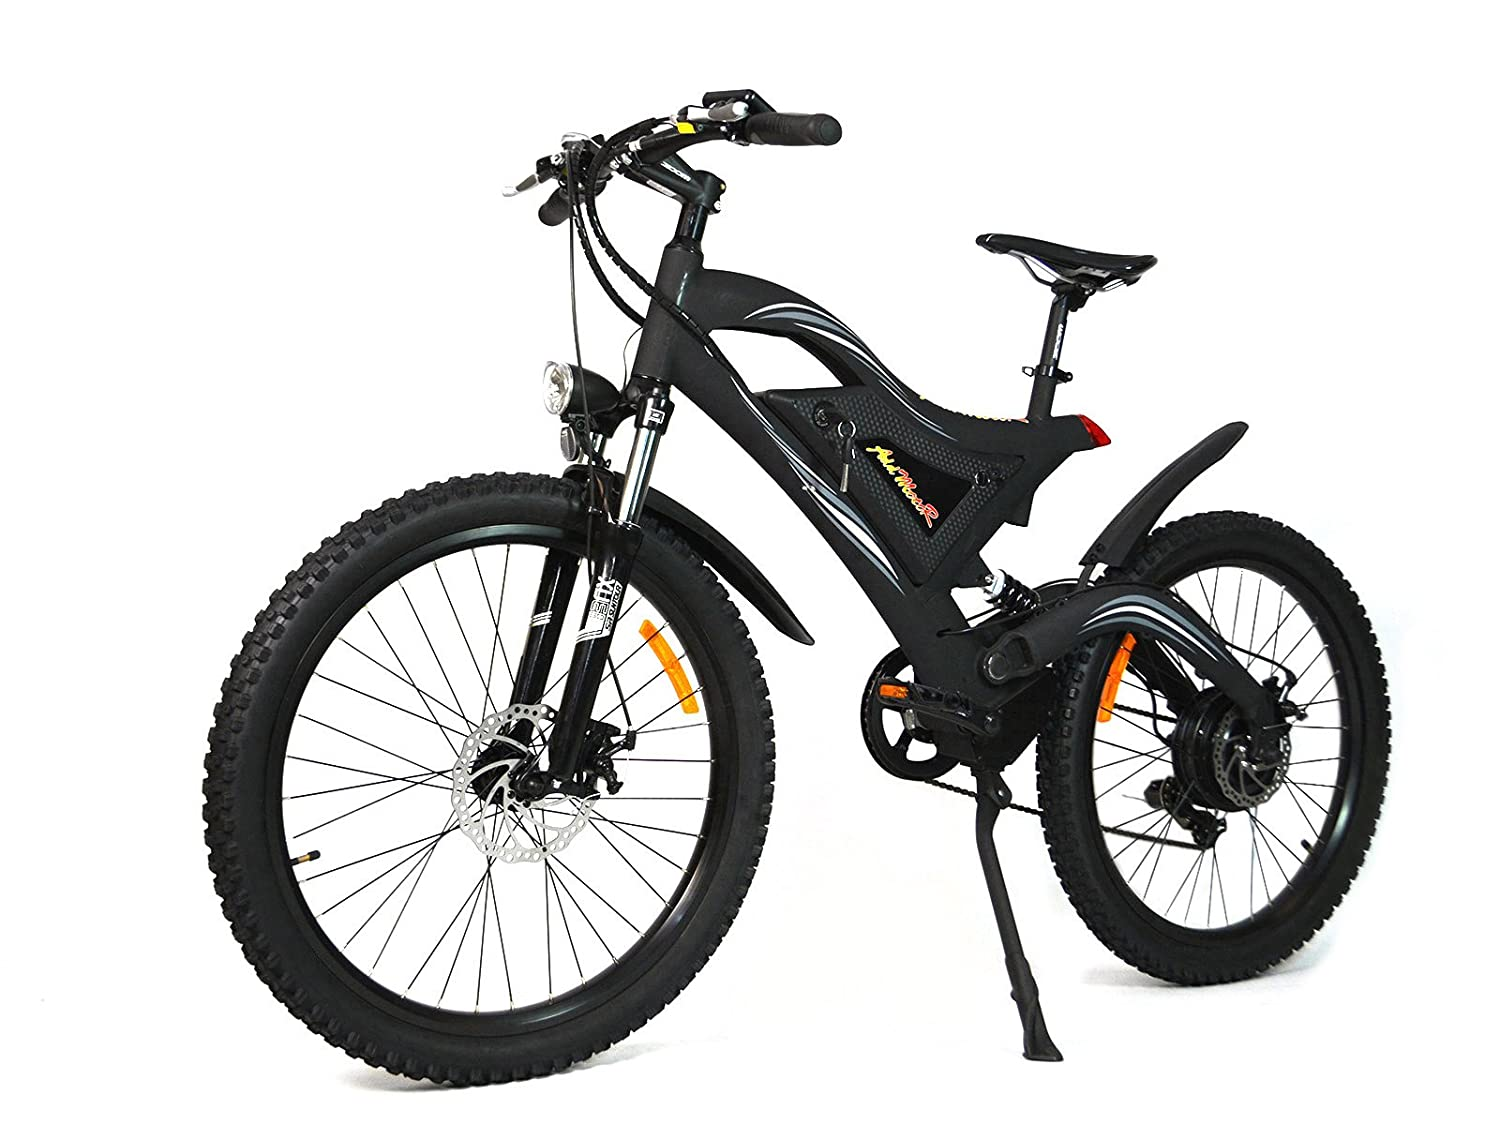 Top 20 Best Pedal Assist Electric Bicycles 2019-2020 - cover